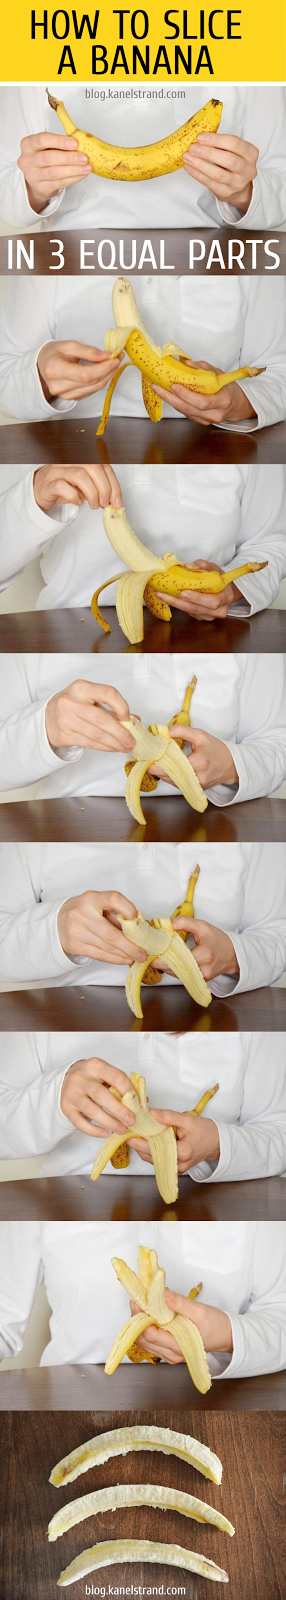 How to slice a banana in 3 equal parts without a knife